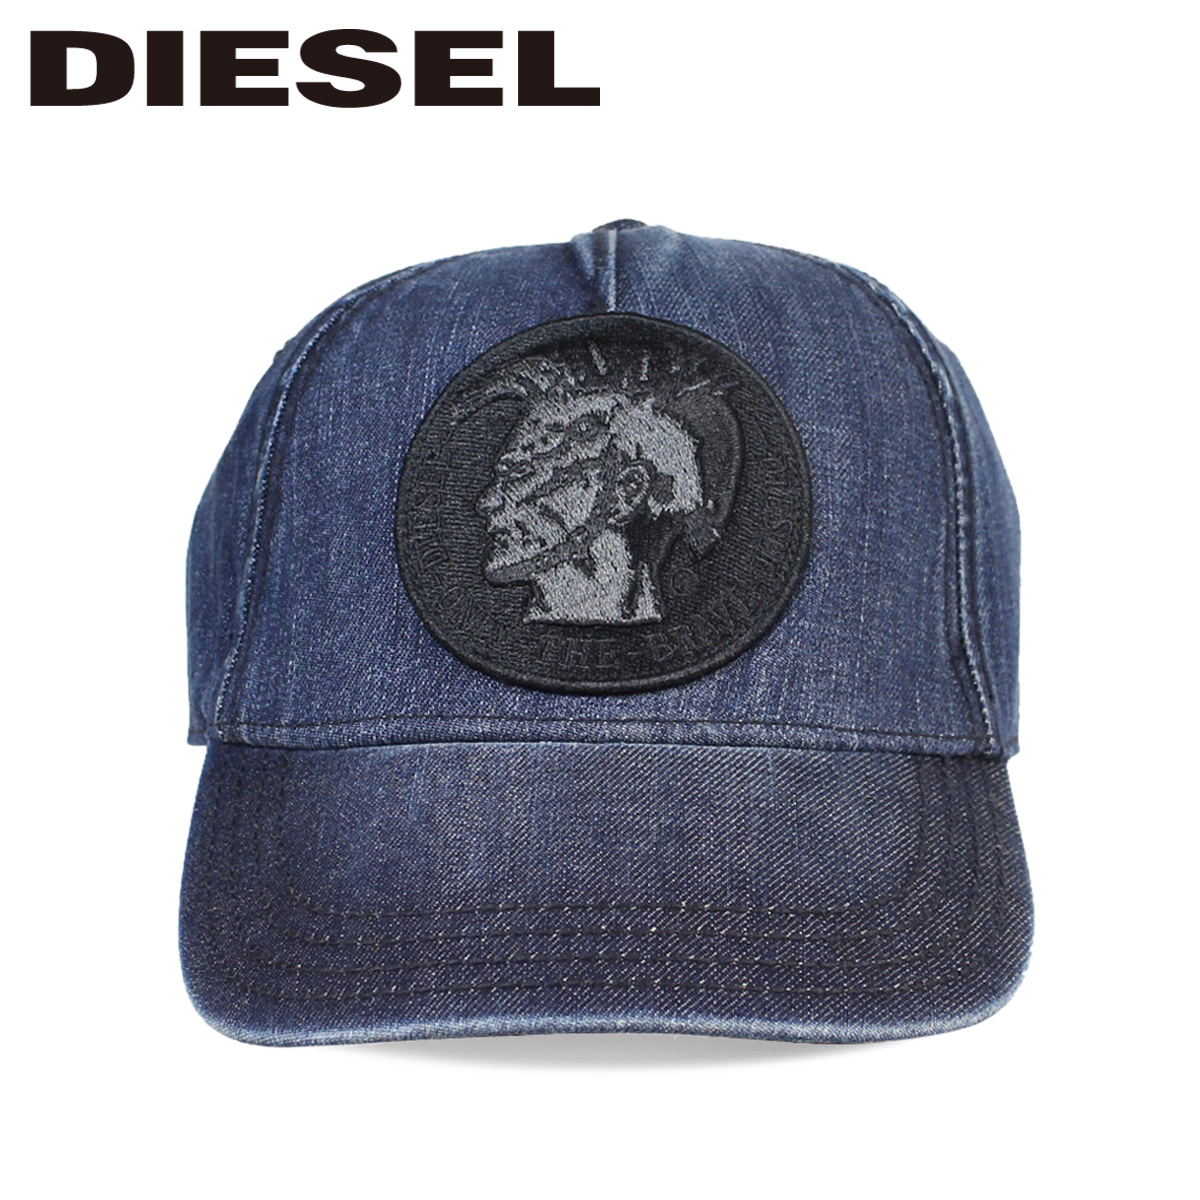 Sugar Online Shop  DIESEL diesel hat cap snapback men gap Dis CATEEN-D HAT  00SP2P0CAMW 01UNI indigo blue  11 7 Shinnyu load   1e975d279b2